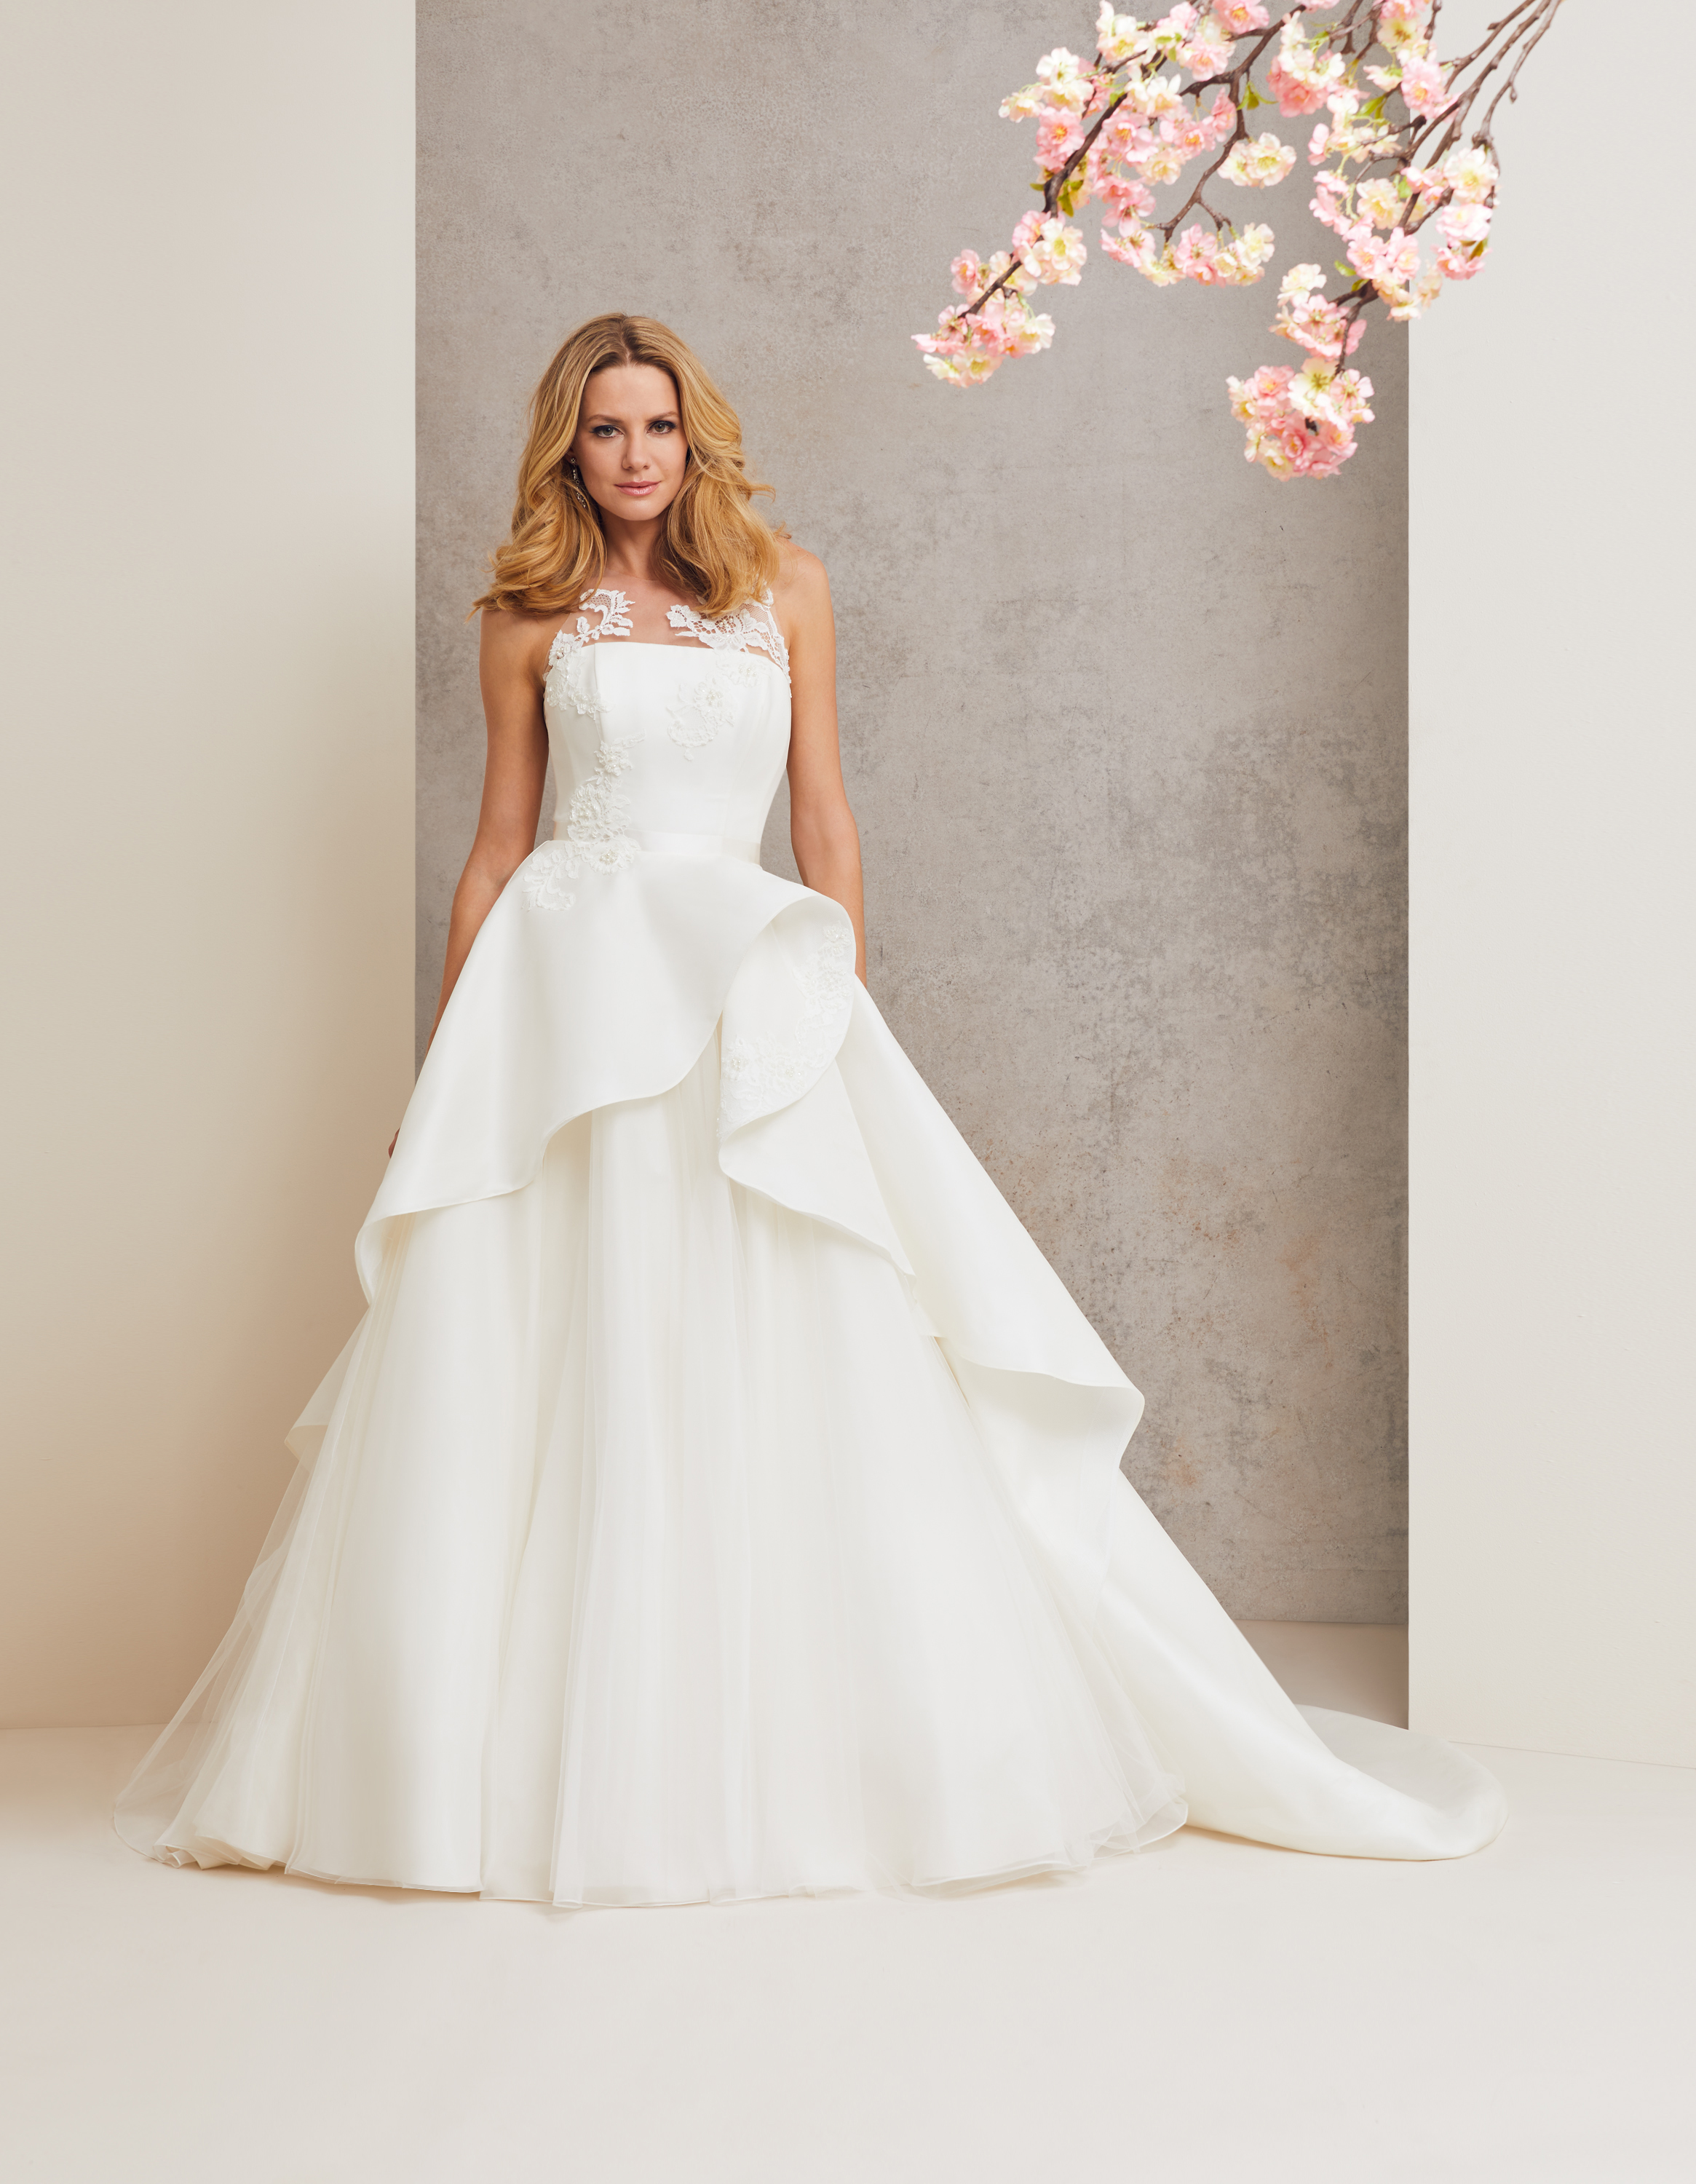 Head over Heels designer wedding dress by Caroline Castigliano